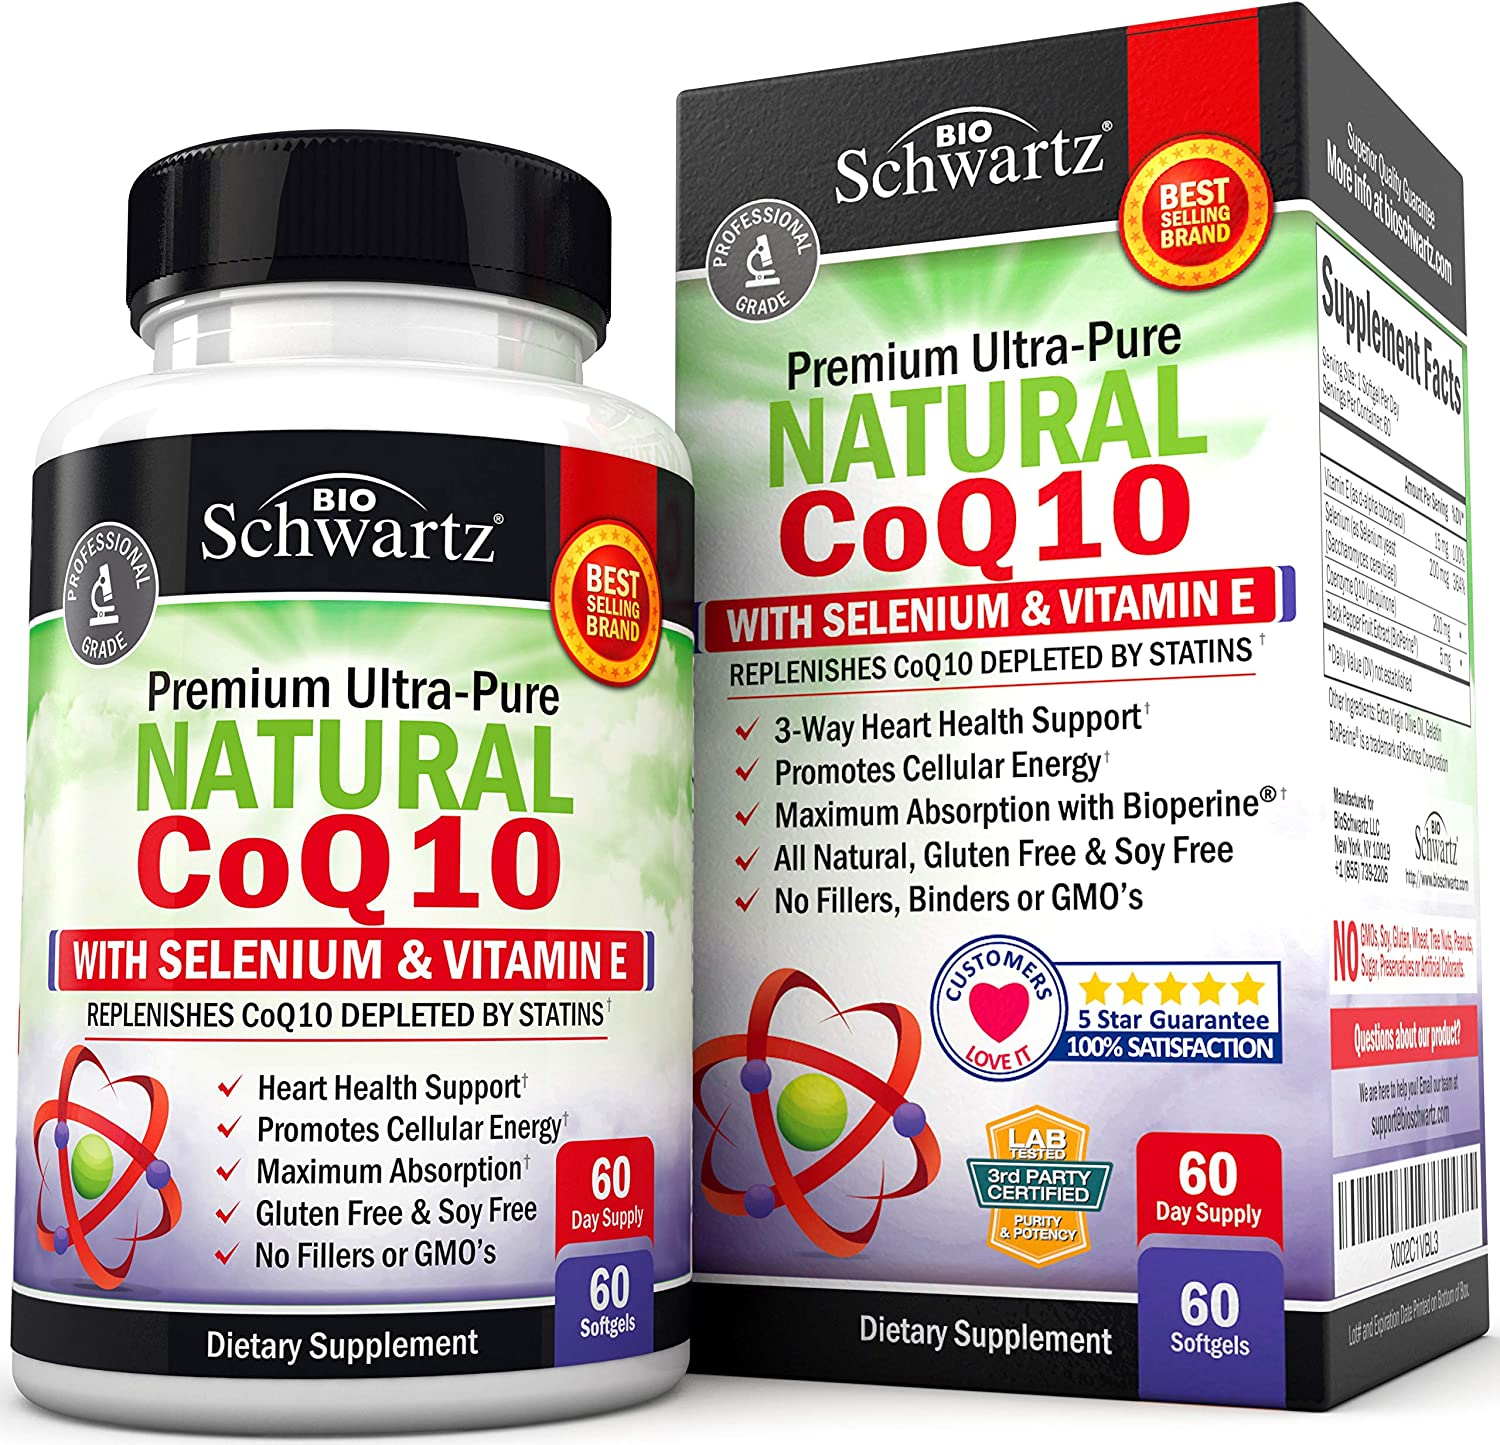 Natural CoQ10 200mg Supplement - with Selenium & Vitamin E for Cardiovascular, Cellular & Muscular Health Support - Promotes Protection from Oxidative Stress - with BioPerine for Maximum Absorption